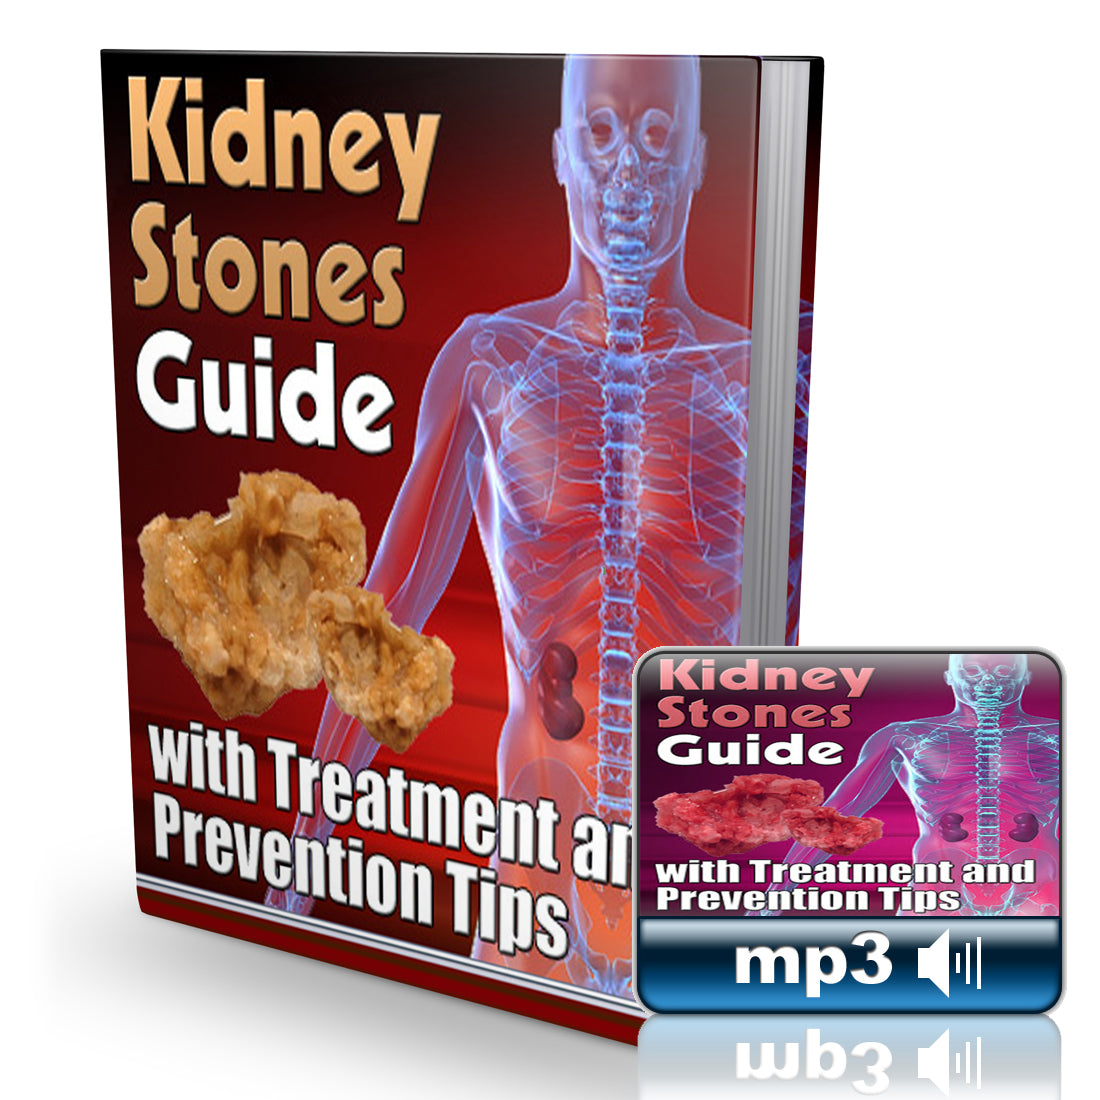 Kidney Stones Guide Combo - Book + Audio Book